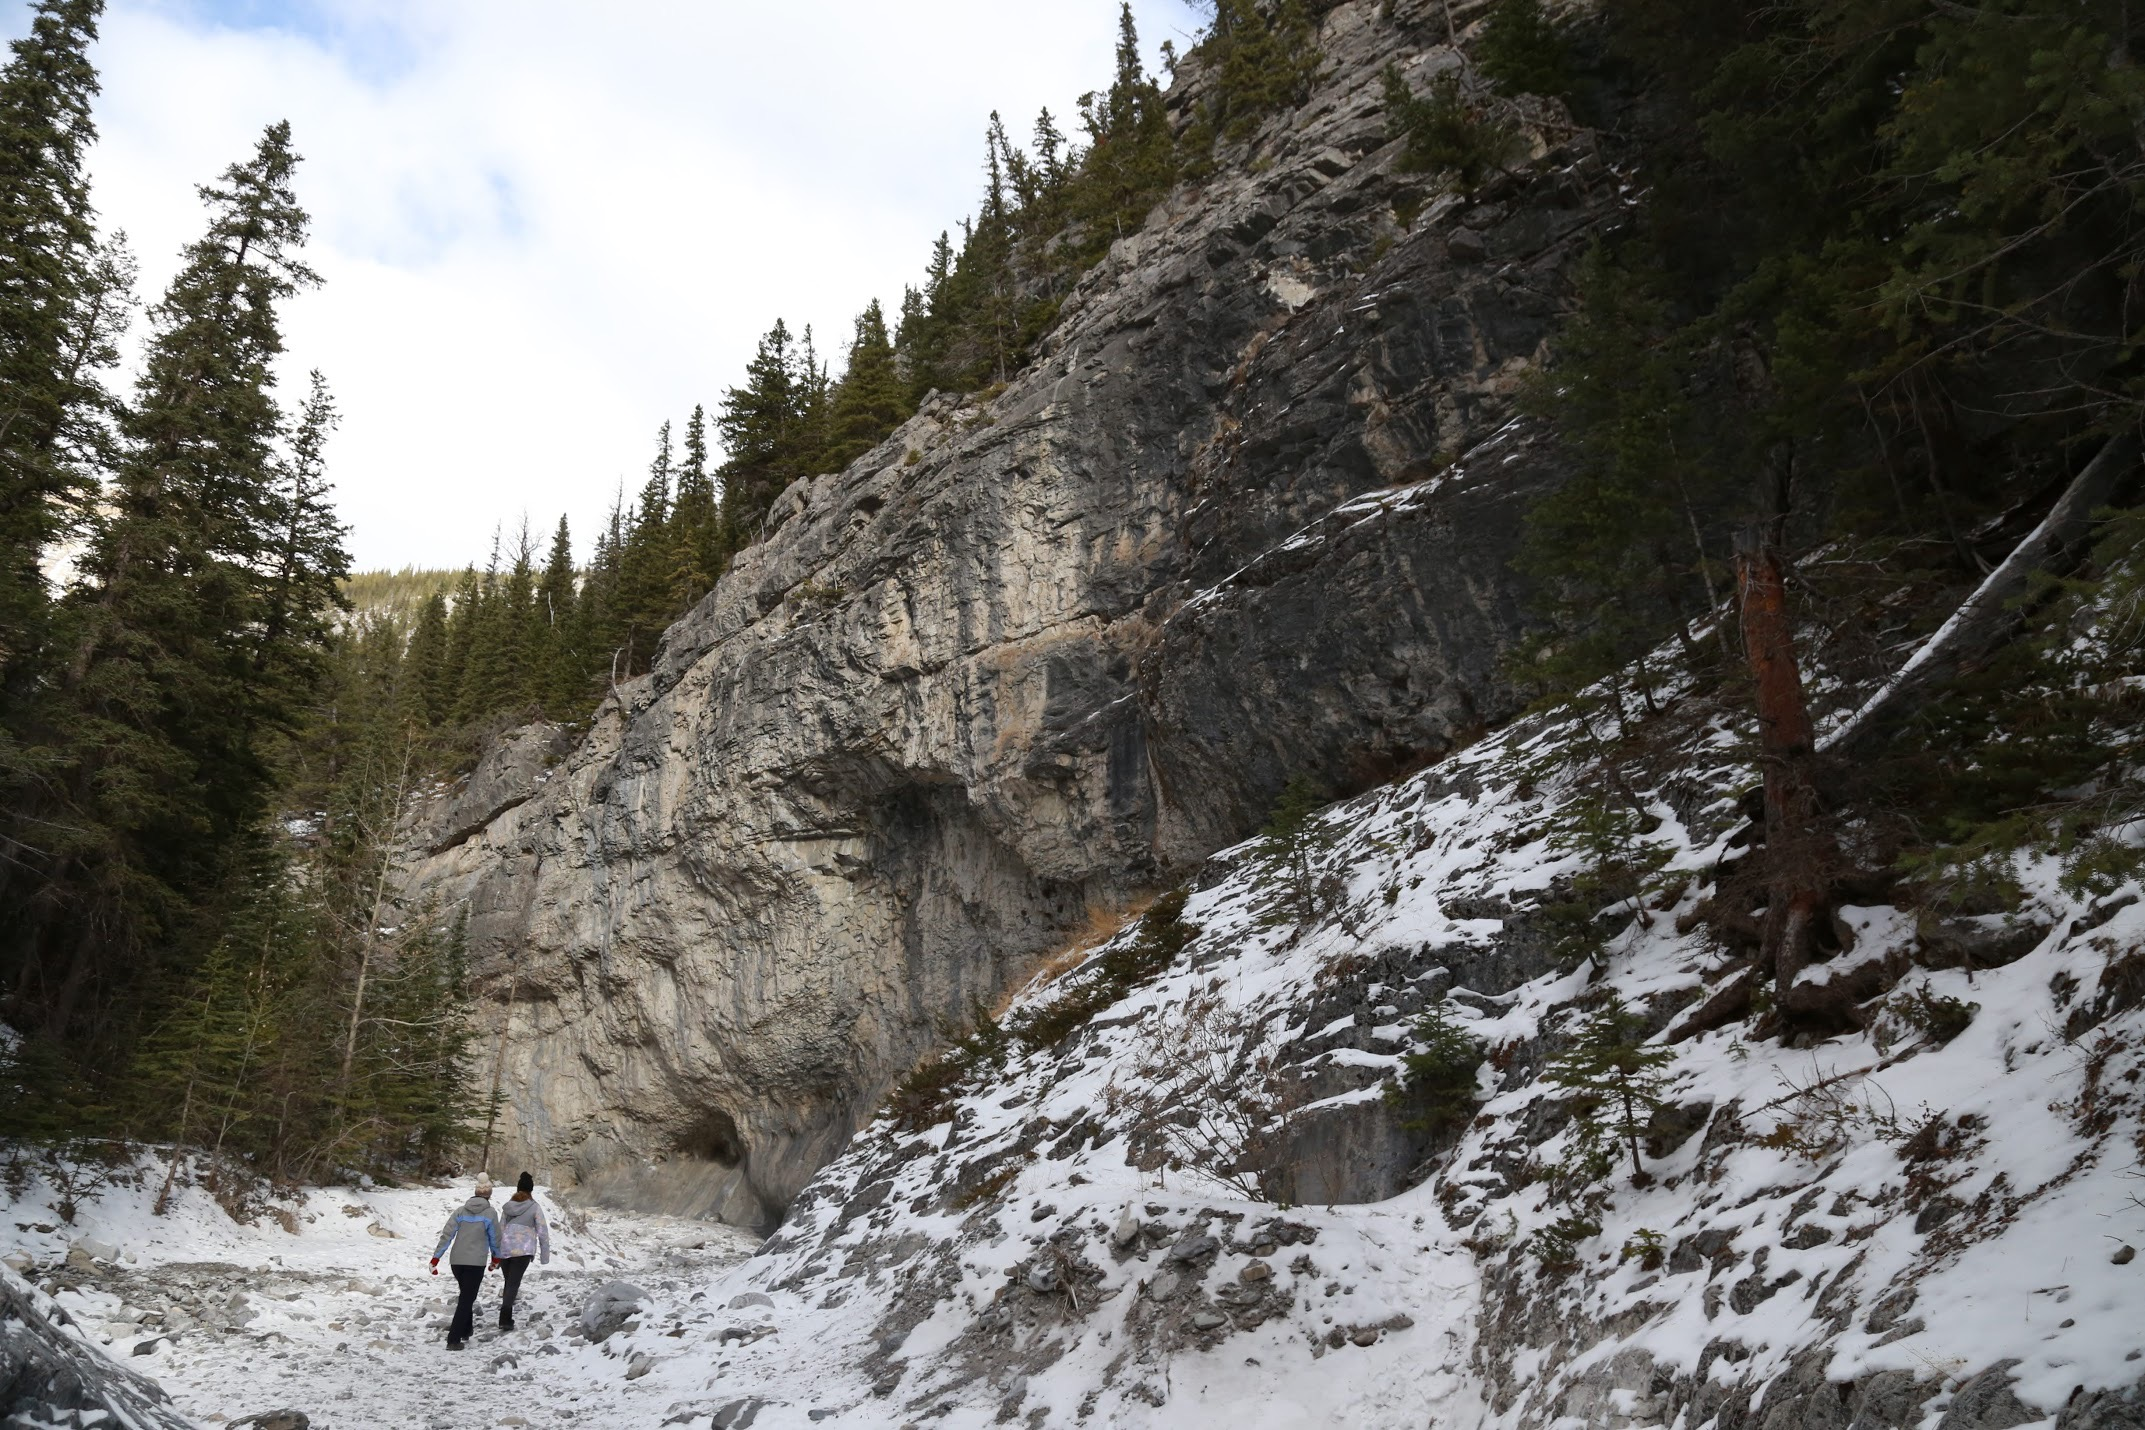 A snowy mountain canyon with two figures hiking deeper into the trail.